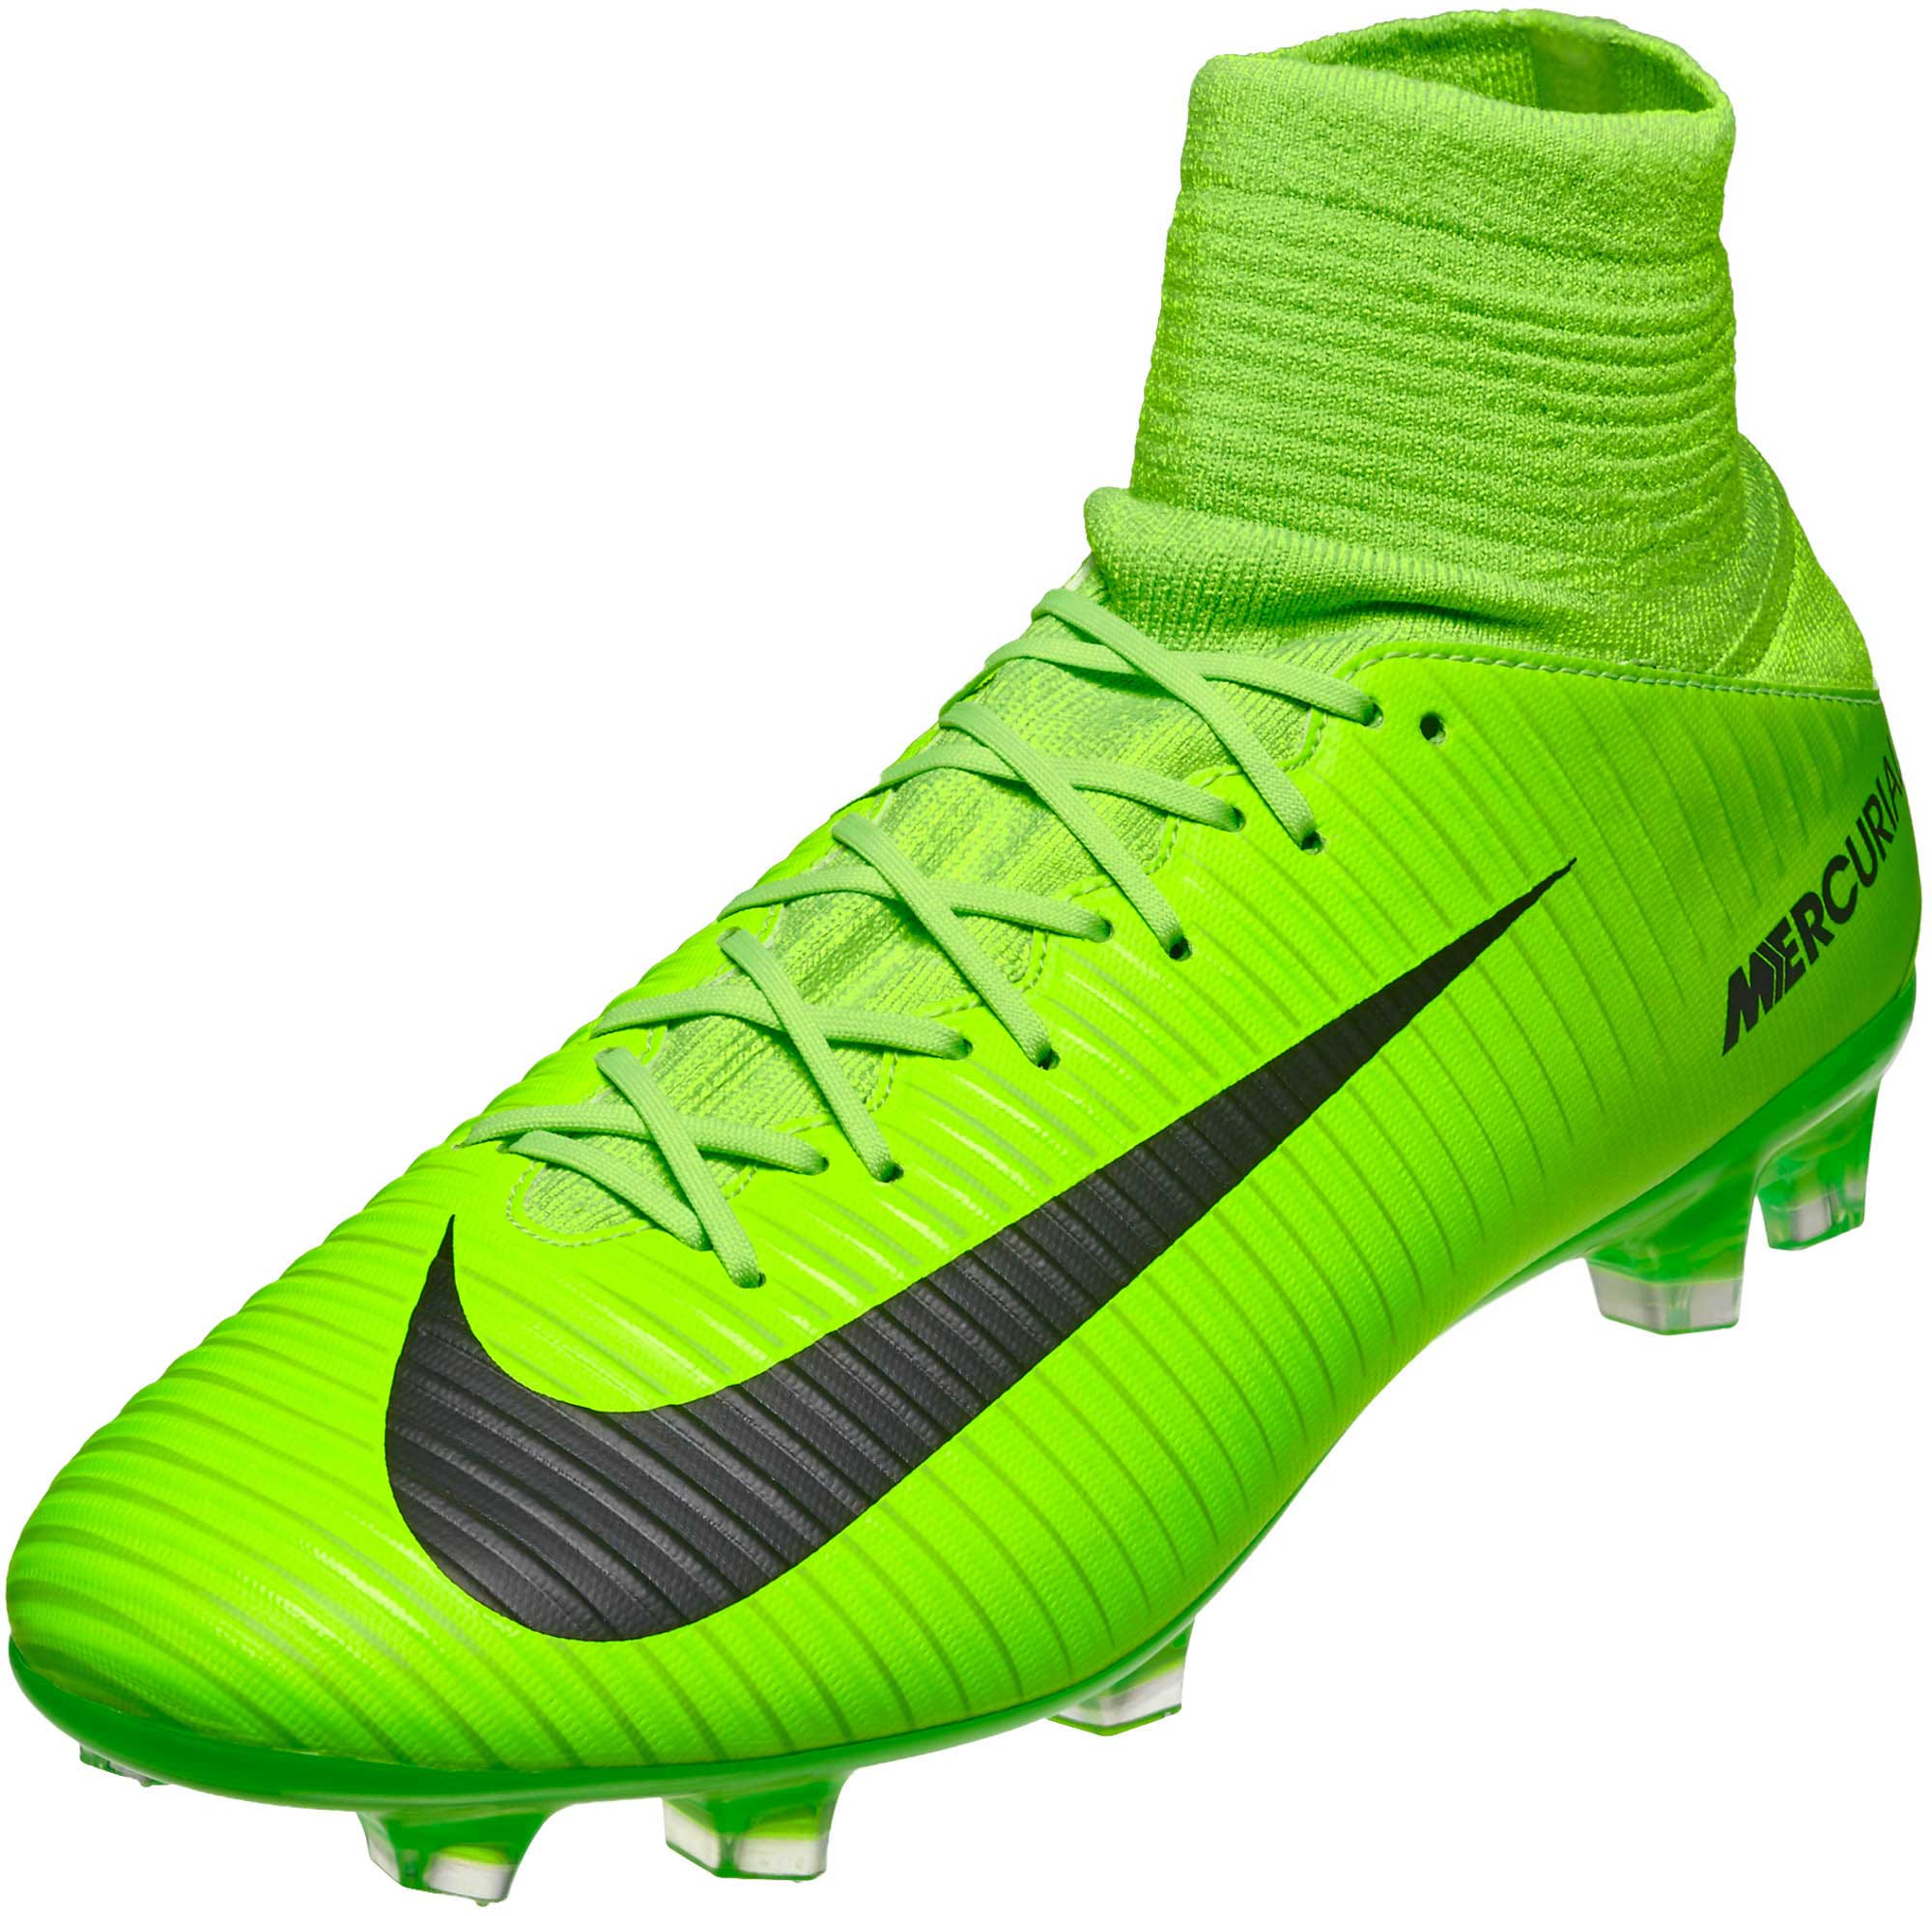 653033fdab3 Nike Mercurial Veloce III DF FG – Electric Green Flash Lime